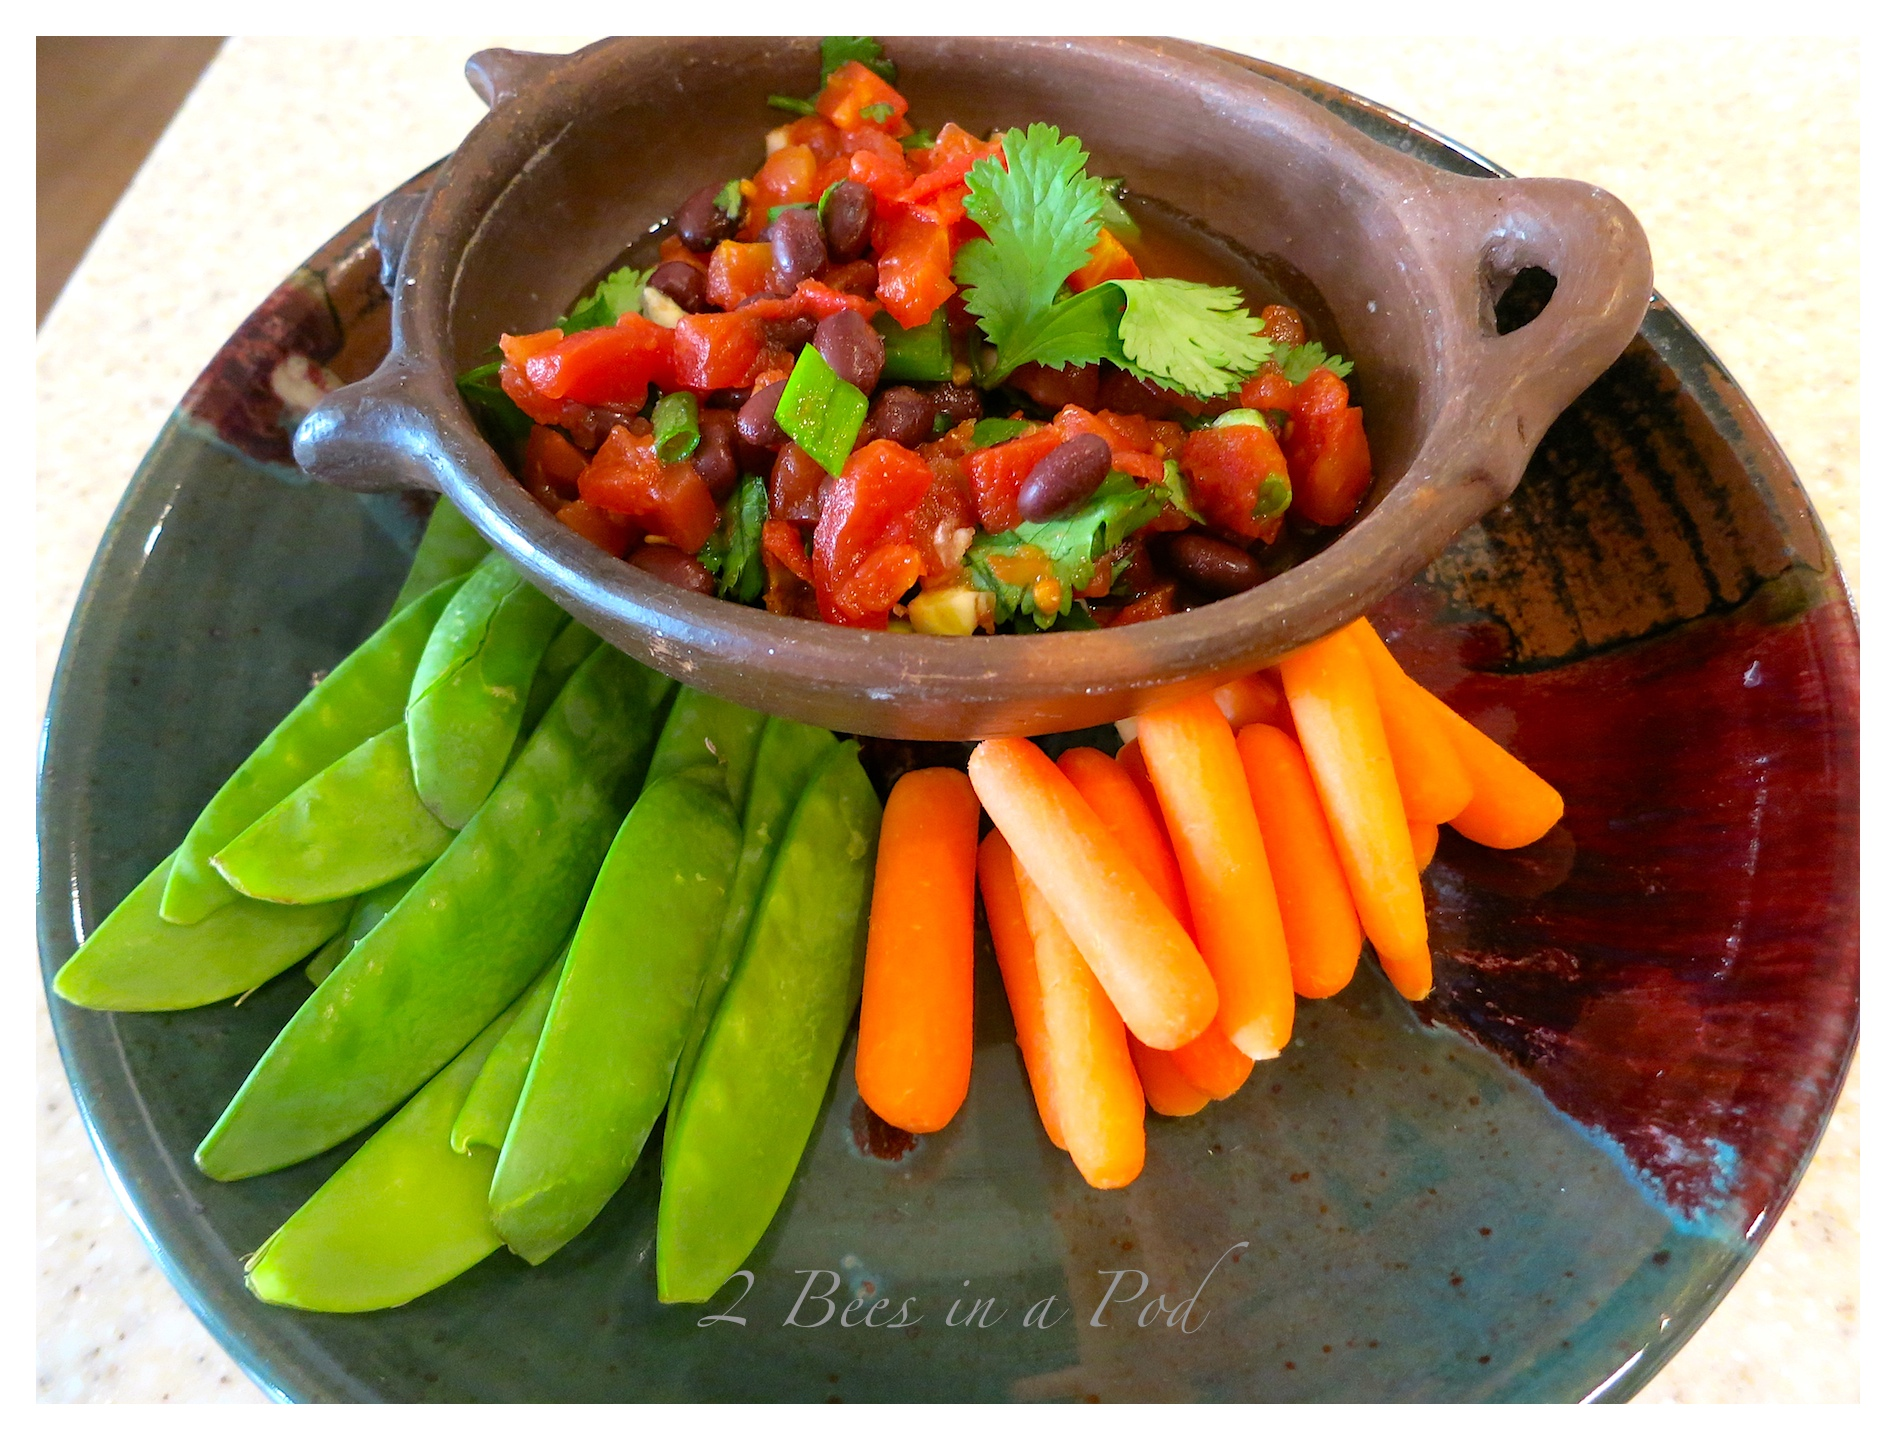 Skinny Super Bowl Snack - Black Bean Salsa. Packed with flavor and very healthy!